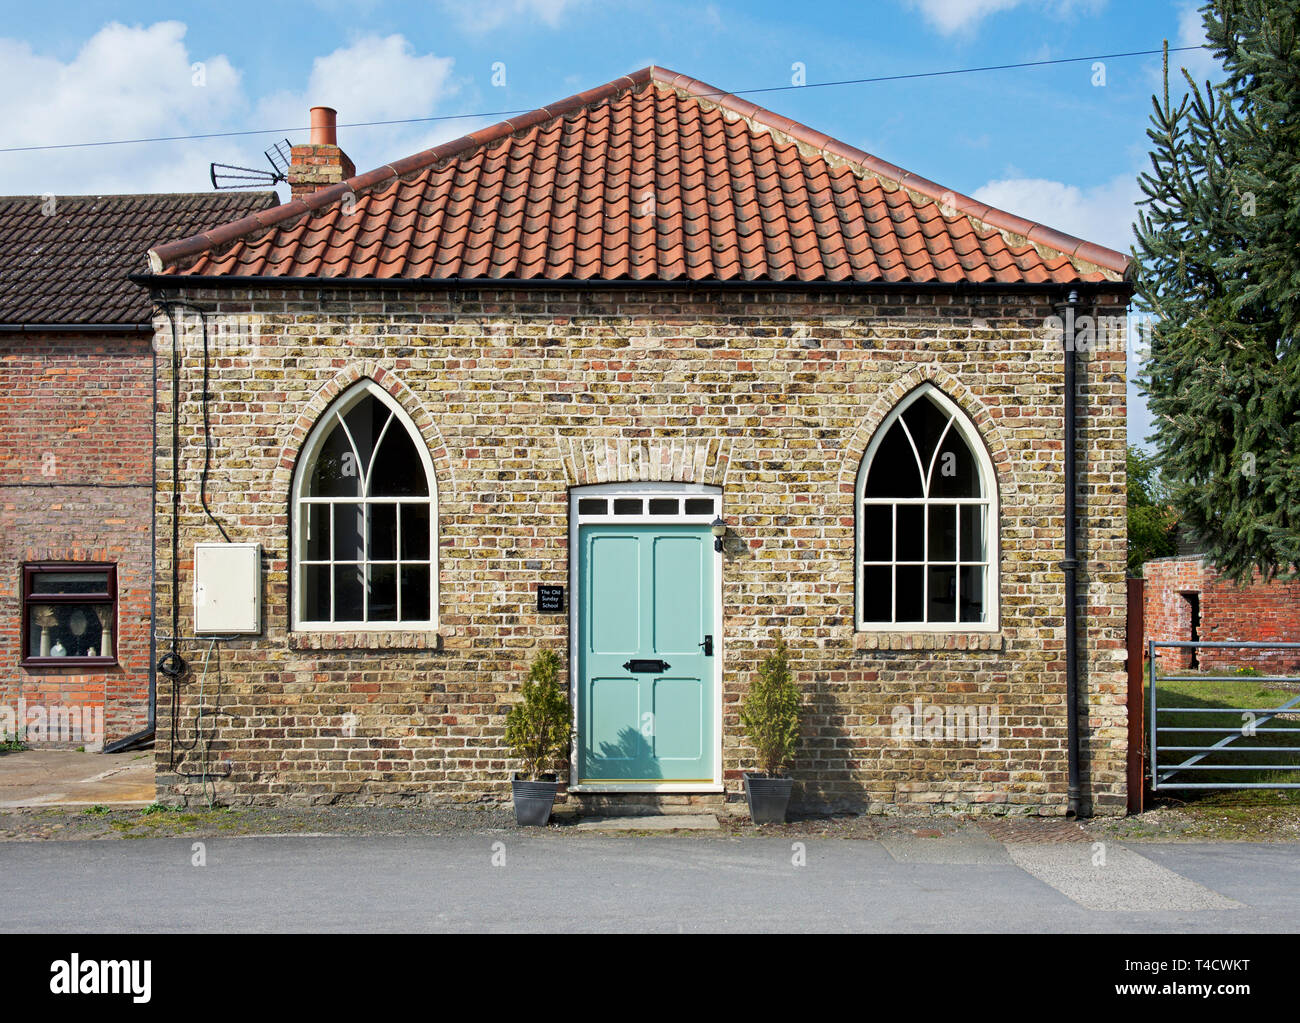 The Old Sunday School, now converted to a dwelling, in the village of Asselby, East Yorkshire, England UK - Stock Image